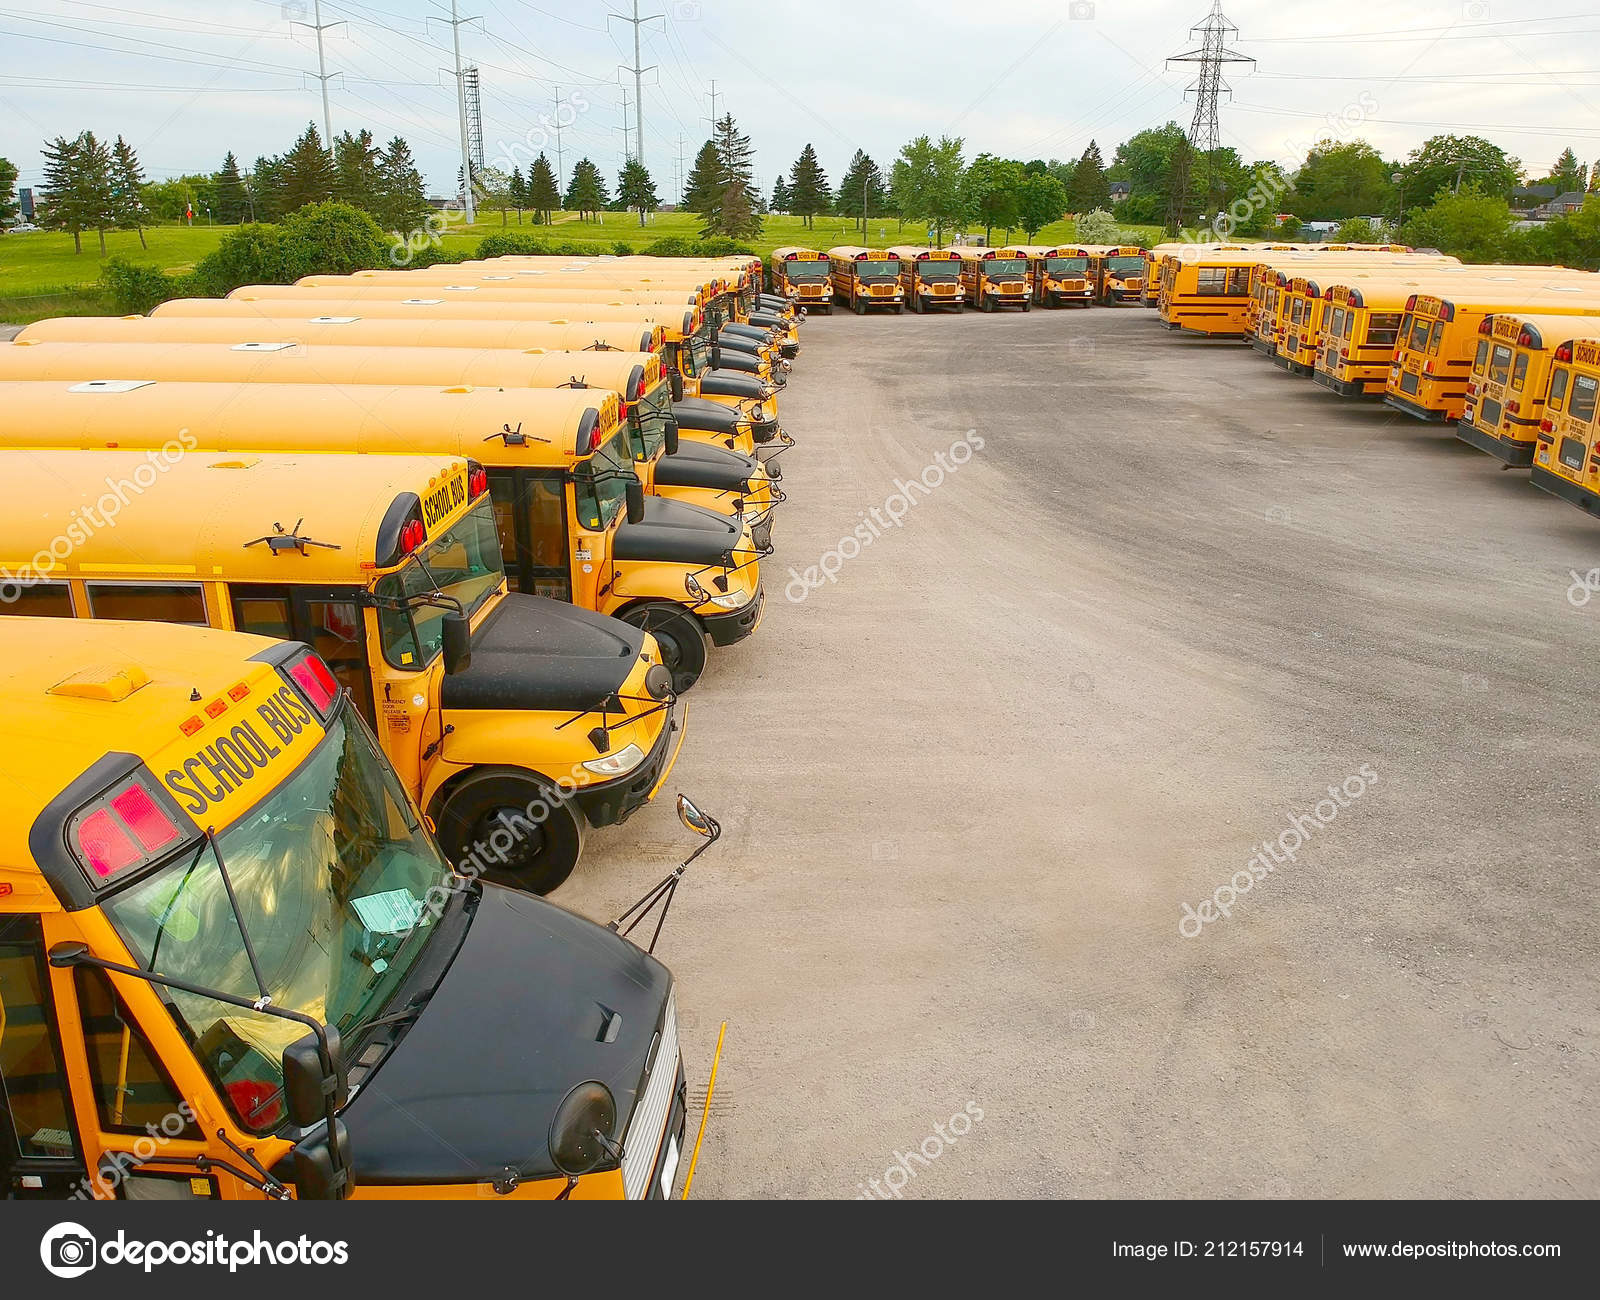 yellow school buses parking evening front side view parked american